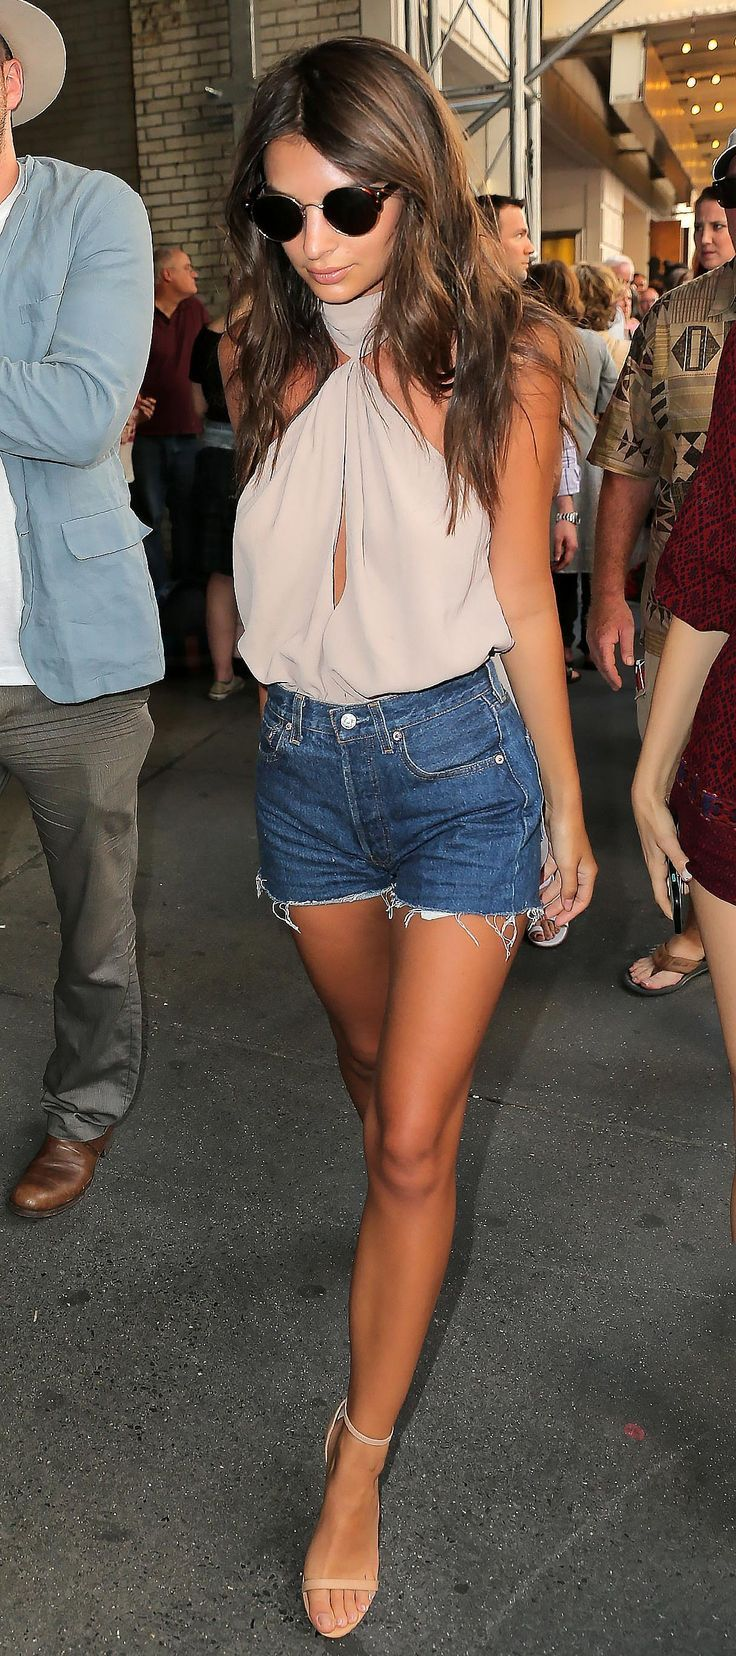 Emily Ratajkowski raised the bar on summer-in-the-city beauty.